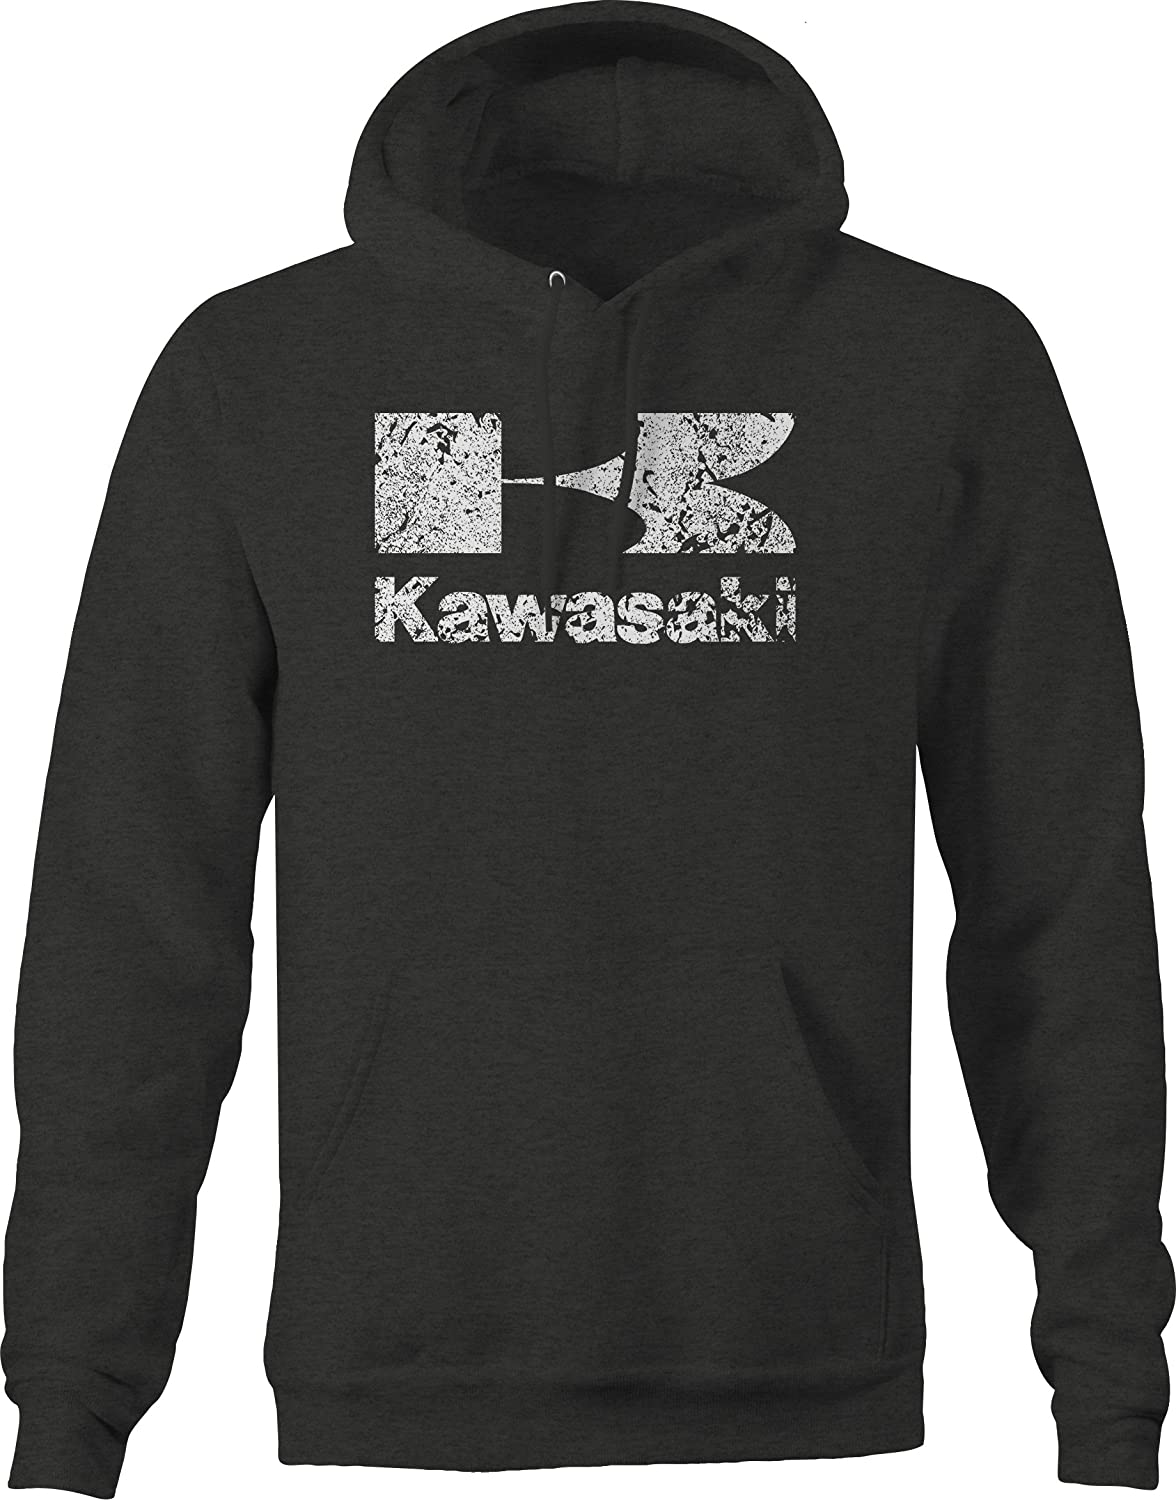 OS Gear Distressed Kawasaki Mens Motorcycle Sweatshirt